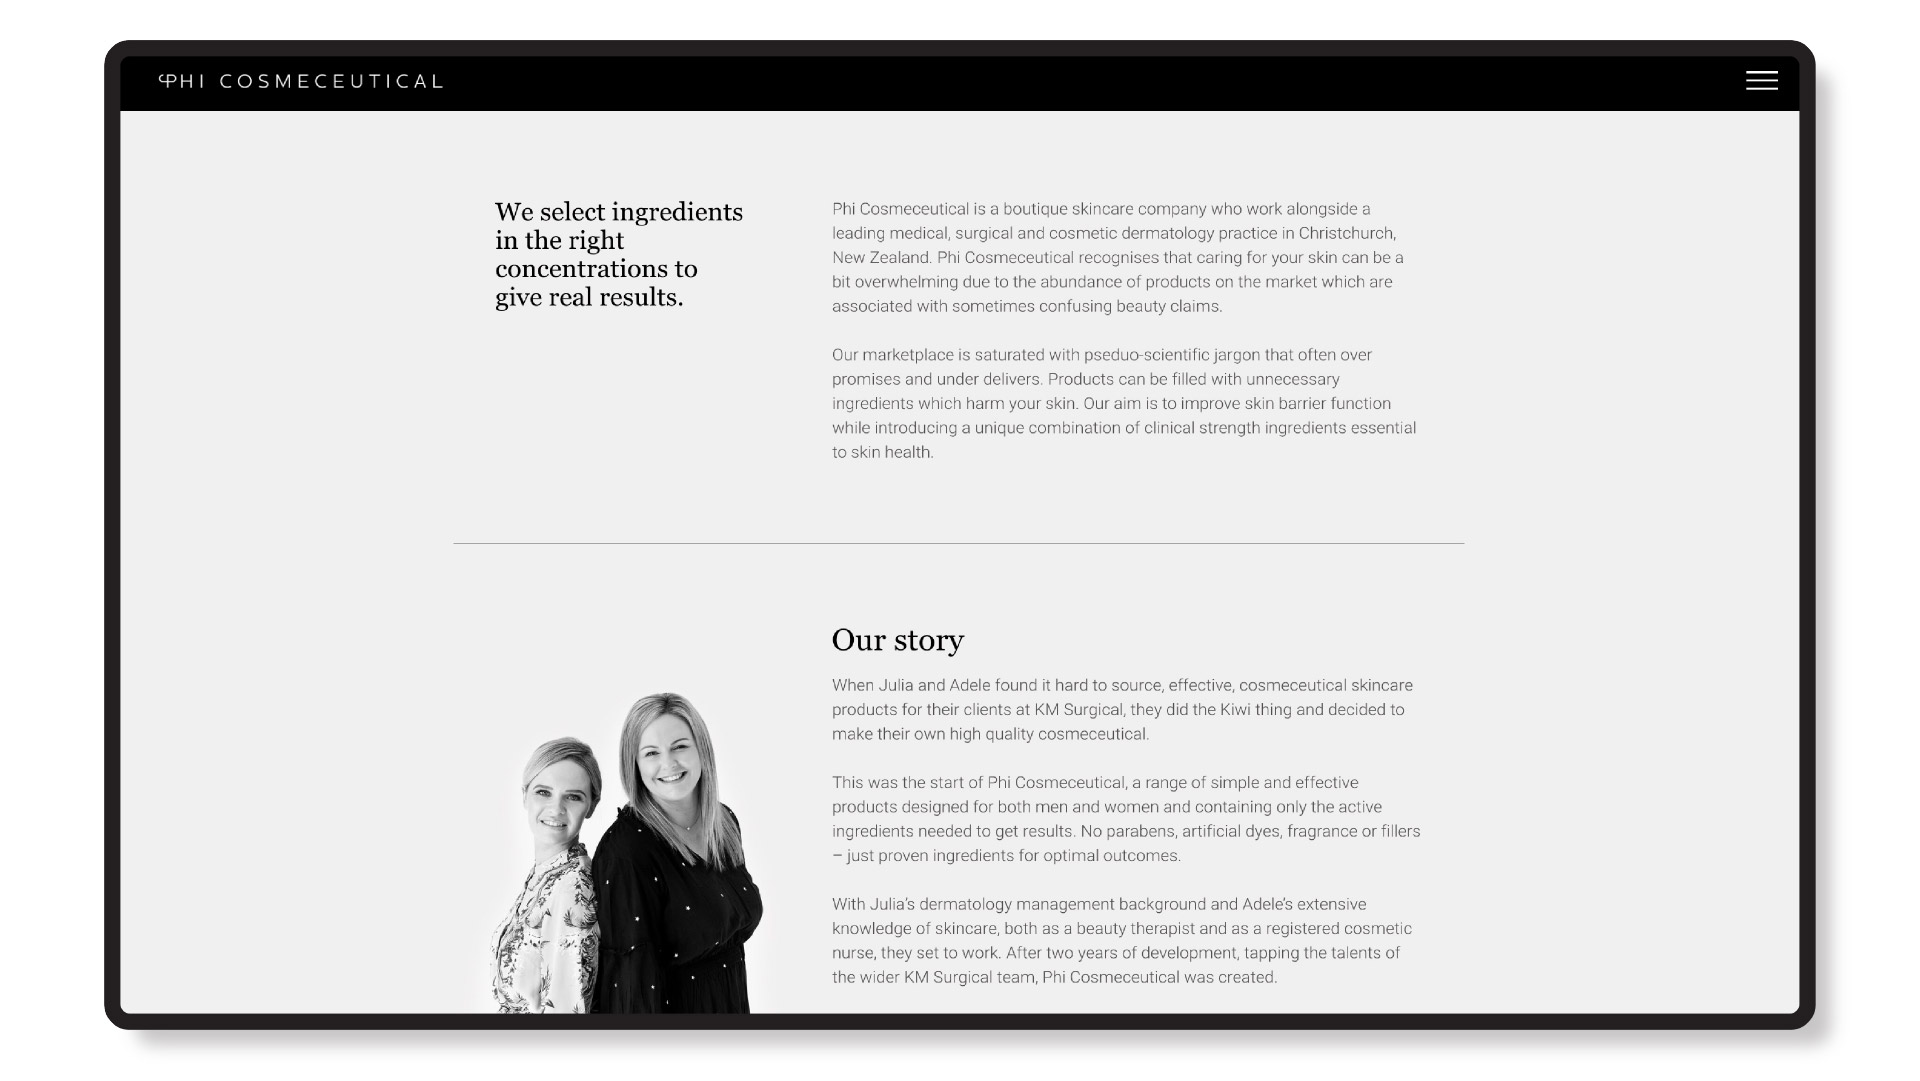 phi cosmeceutical tablet website